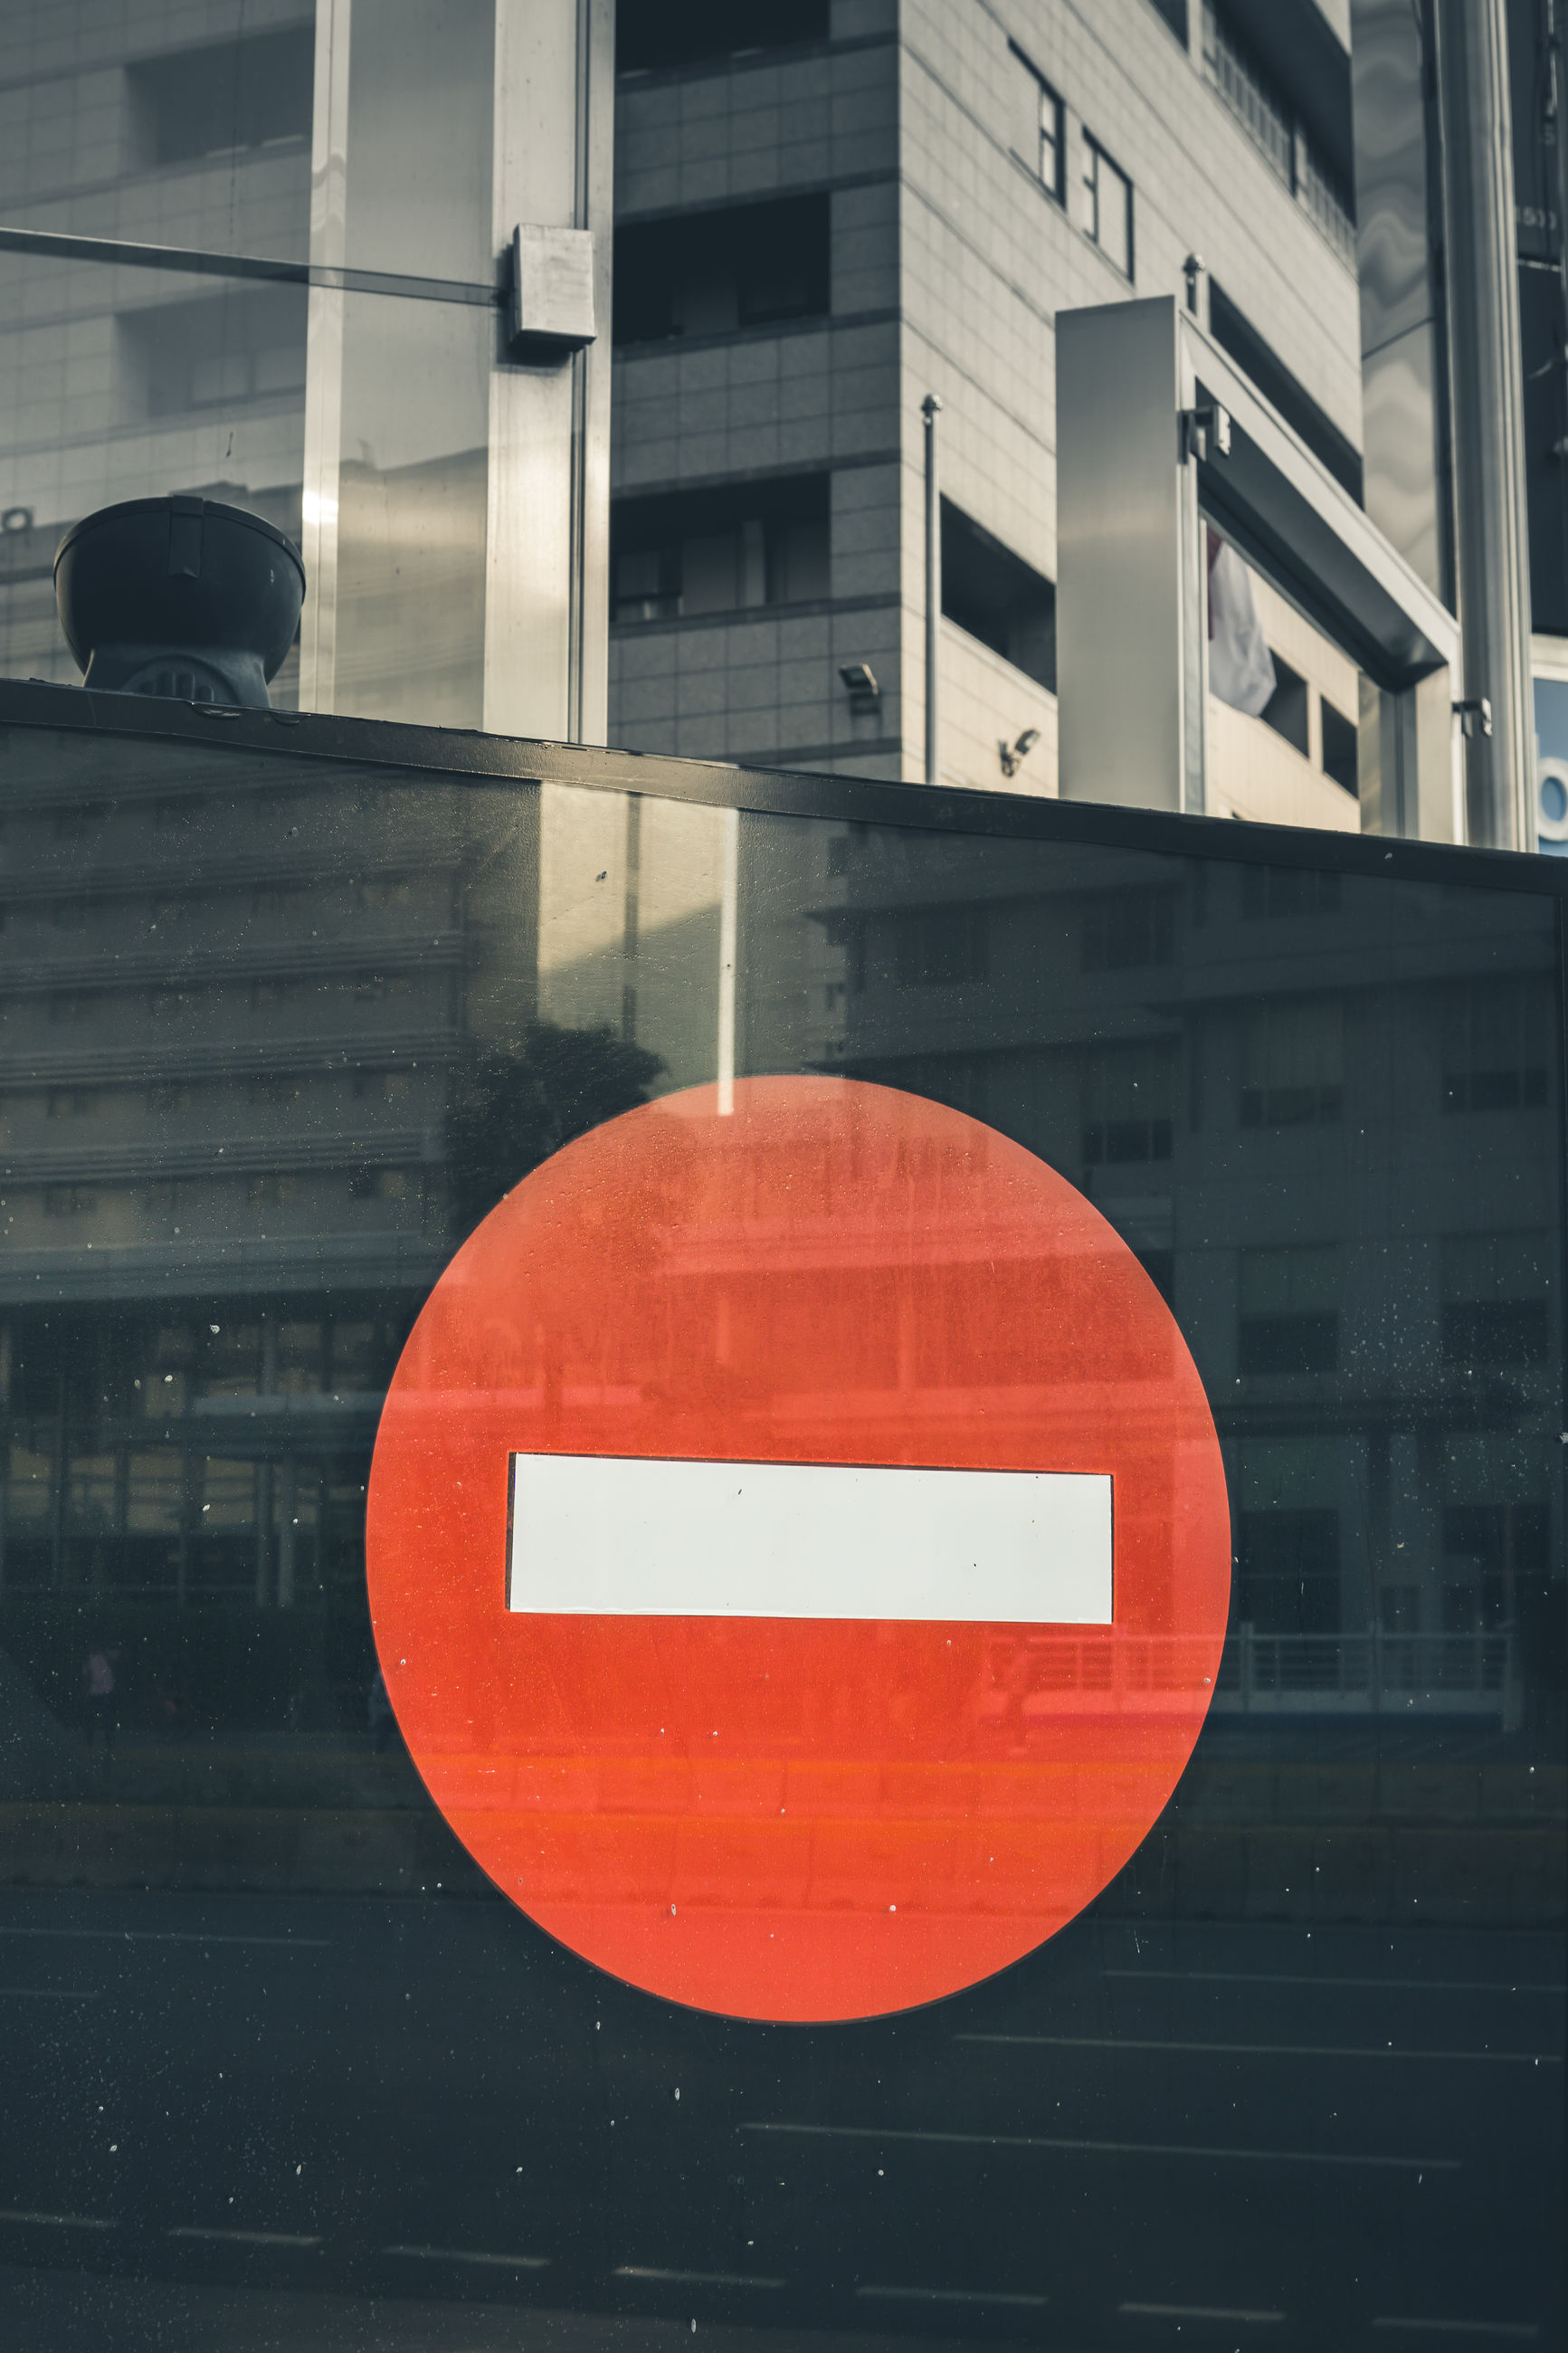 architecture, communication, sign, built structure, building exterior, circle, geometric shape, road sign, road, information, red, guidance, no people, do not enter sign, orange color, shape, information sign, day, outdoors, forbidden